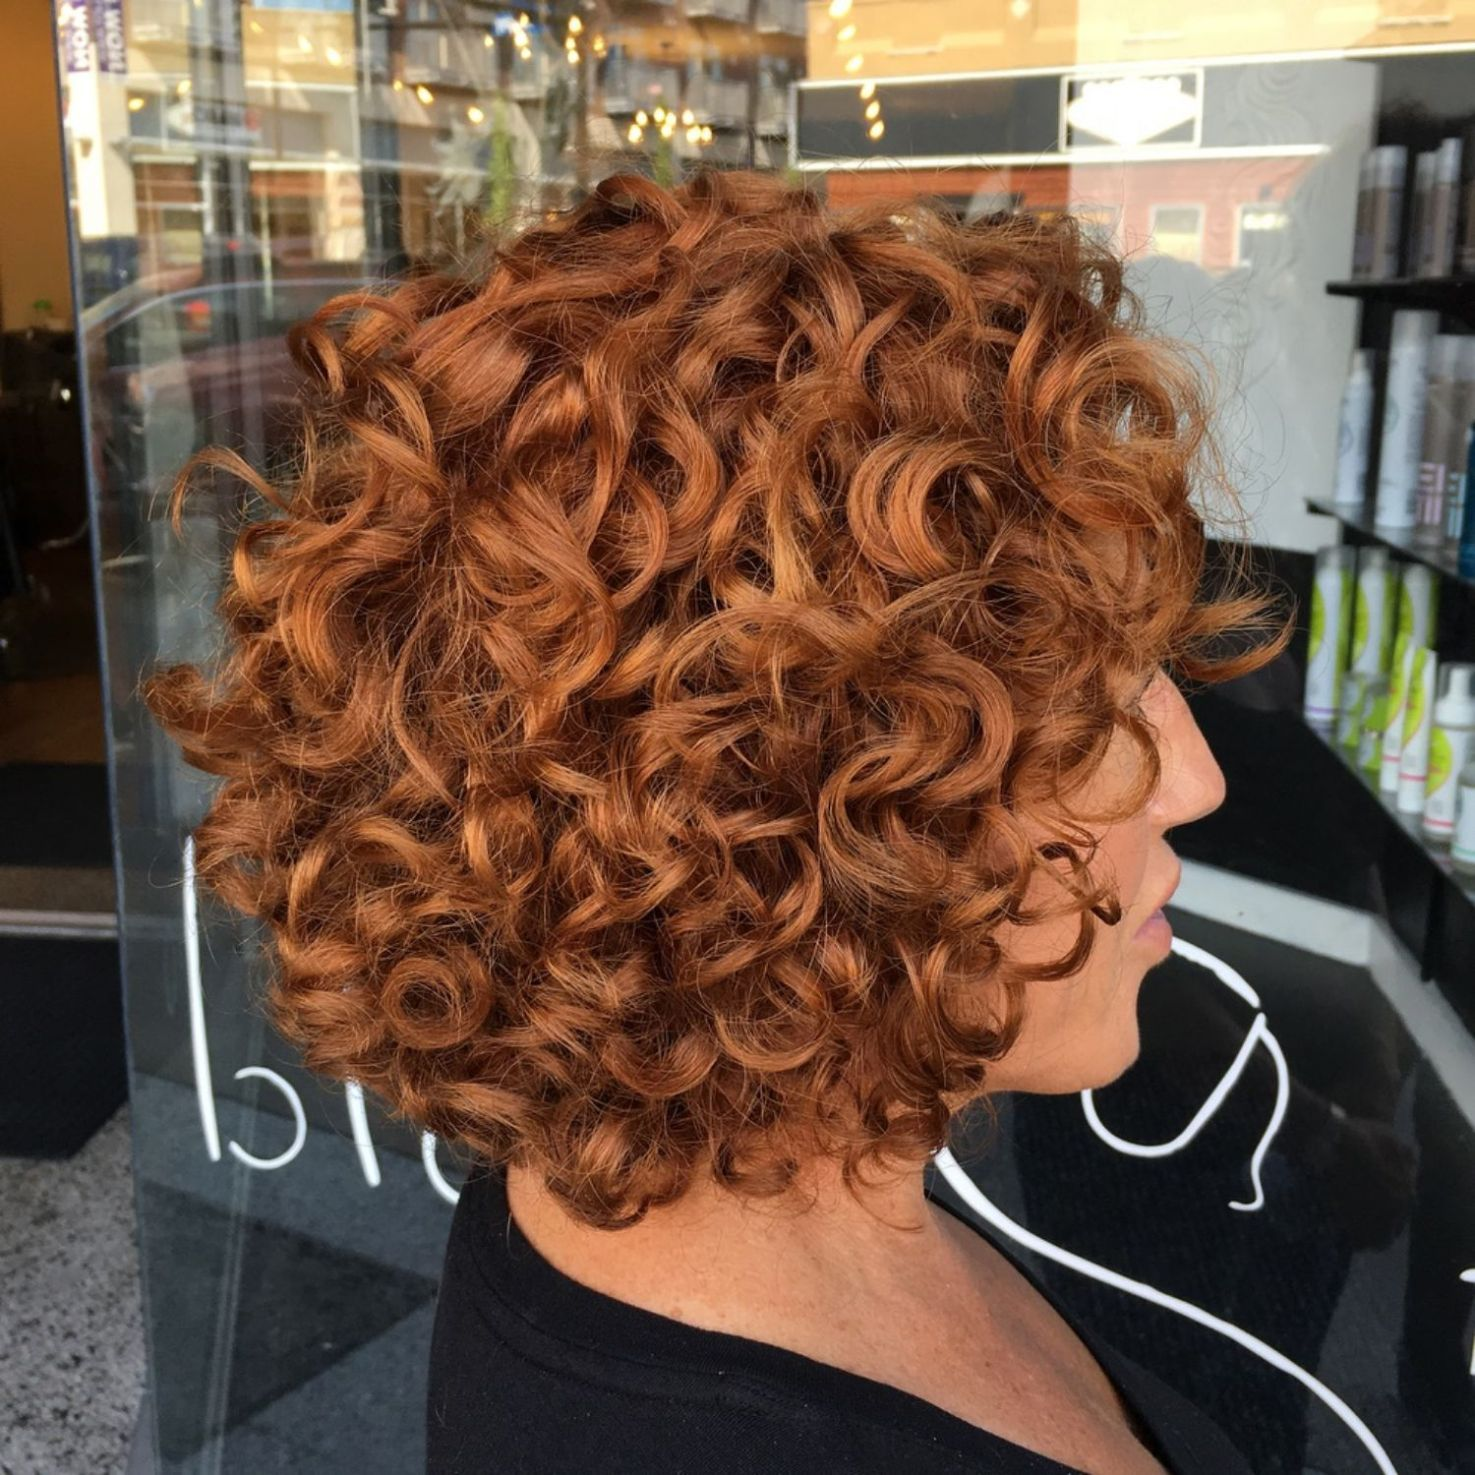 Short Curly Copper Red Bob Curly Bob Hairstyles Red Bob Hair Bob Hairstyles